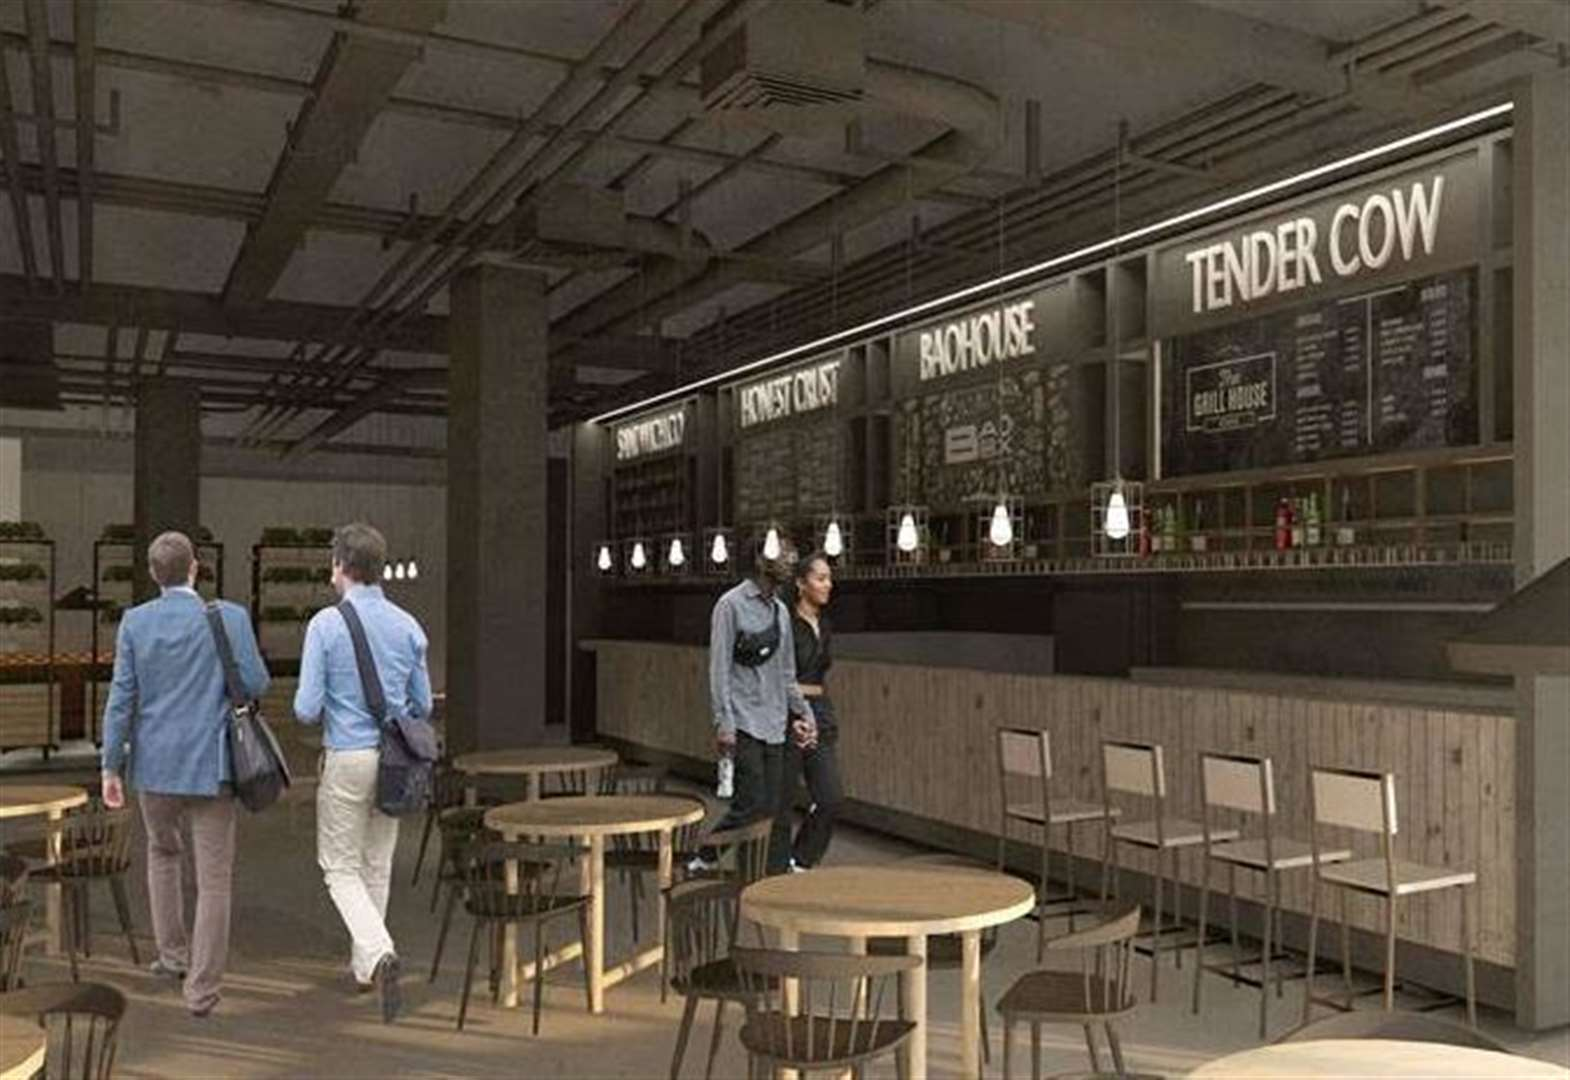 Name chosen for new £467k food hall